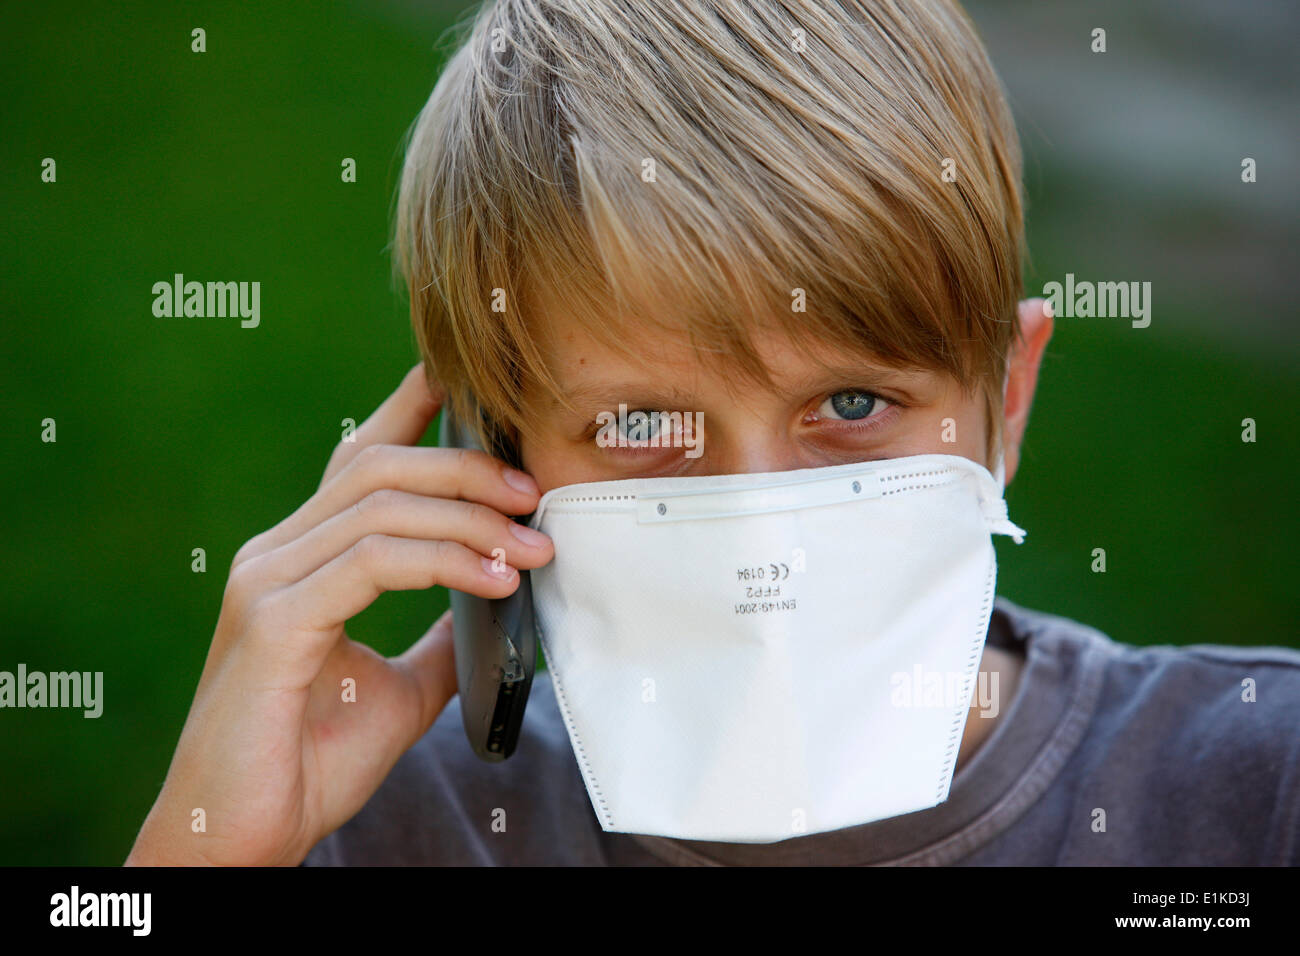 Boy wearing a respiratory mask and using a mobile phone - Stock Image